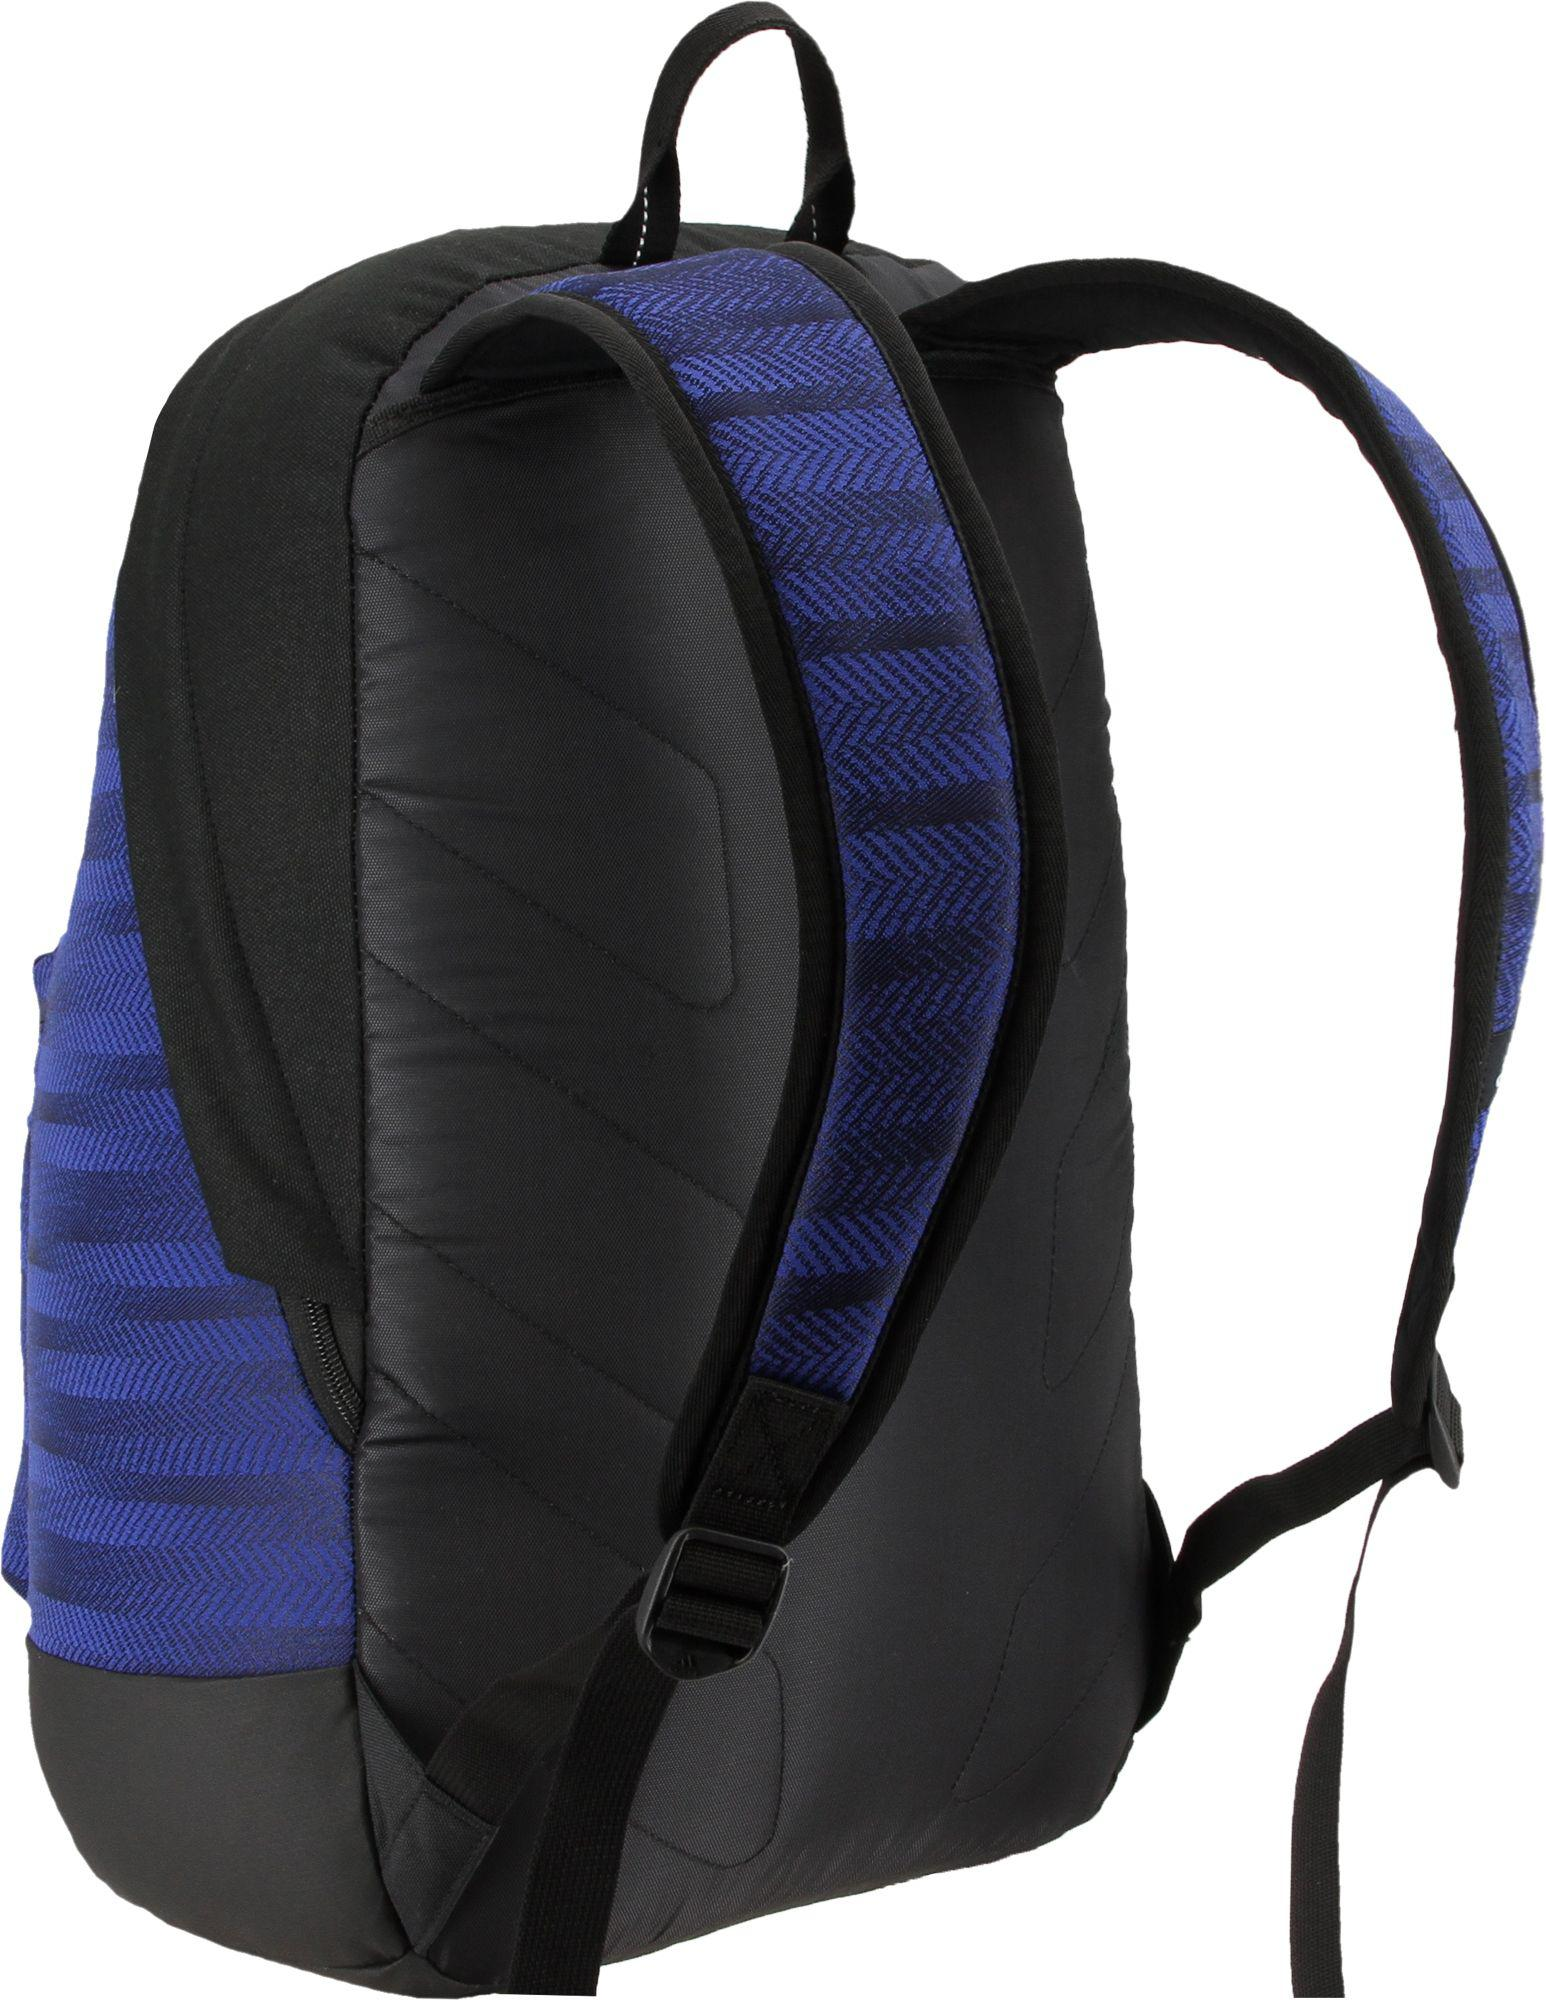 44a809f8e2c6 Lyst - adidas Daybreak Backpack in Blue for Men